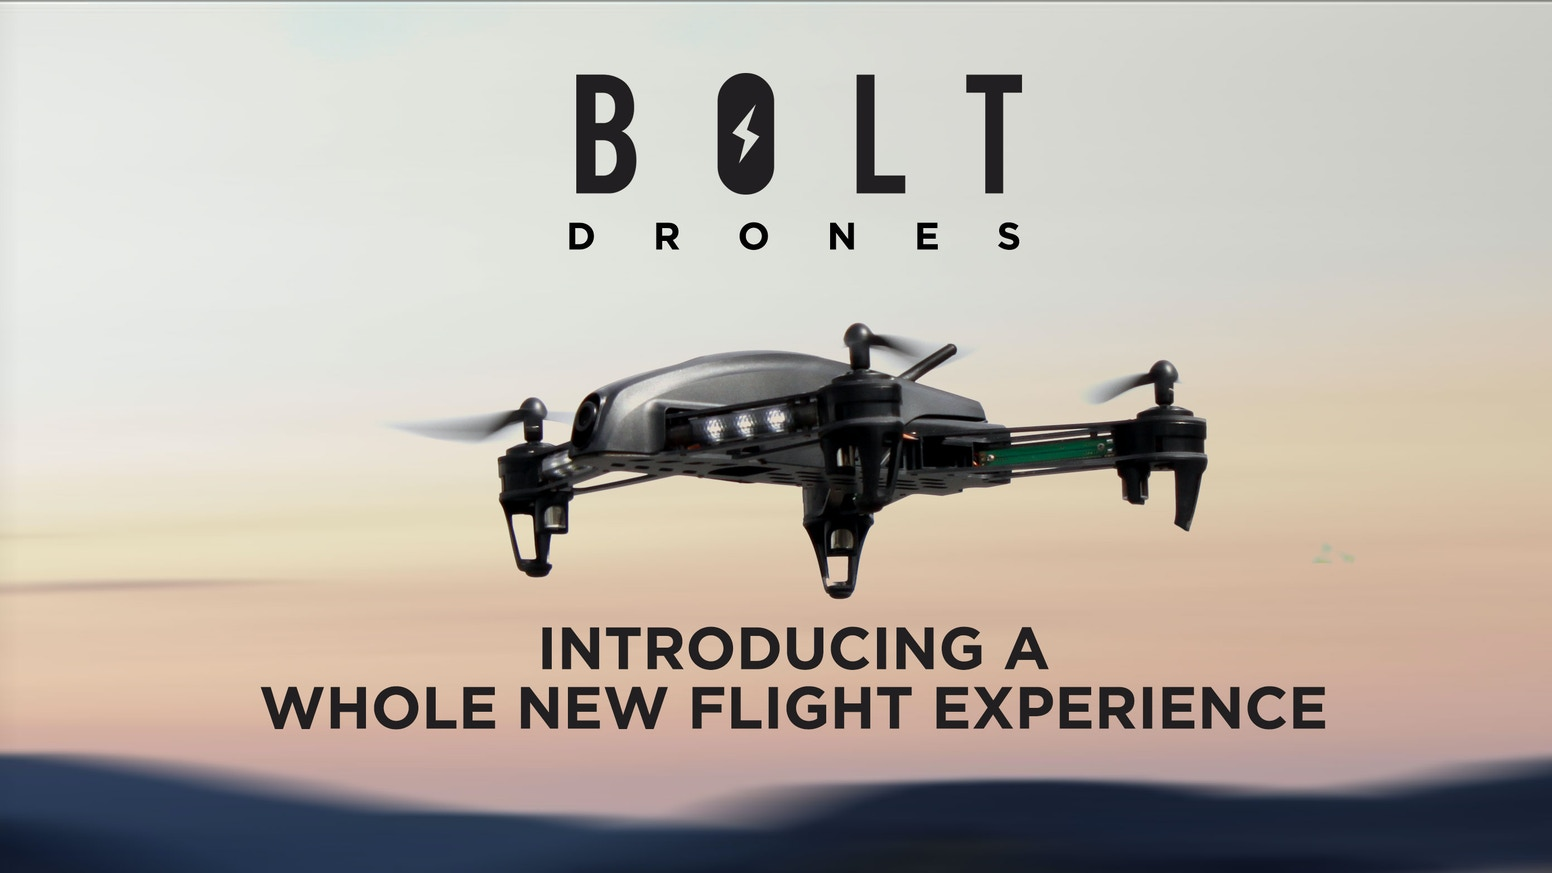 Introducing a whole new flight experience.  An innovative and versatile First Person View drone at a radical price.